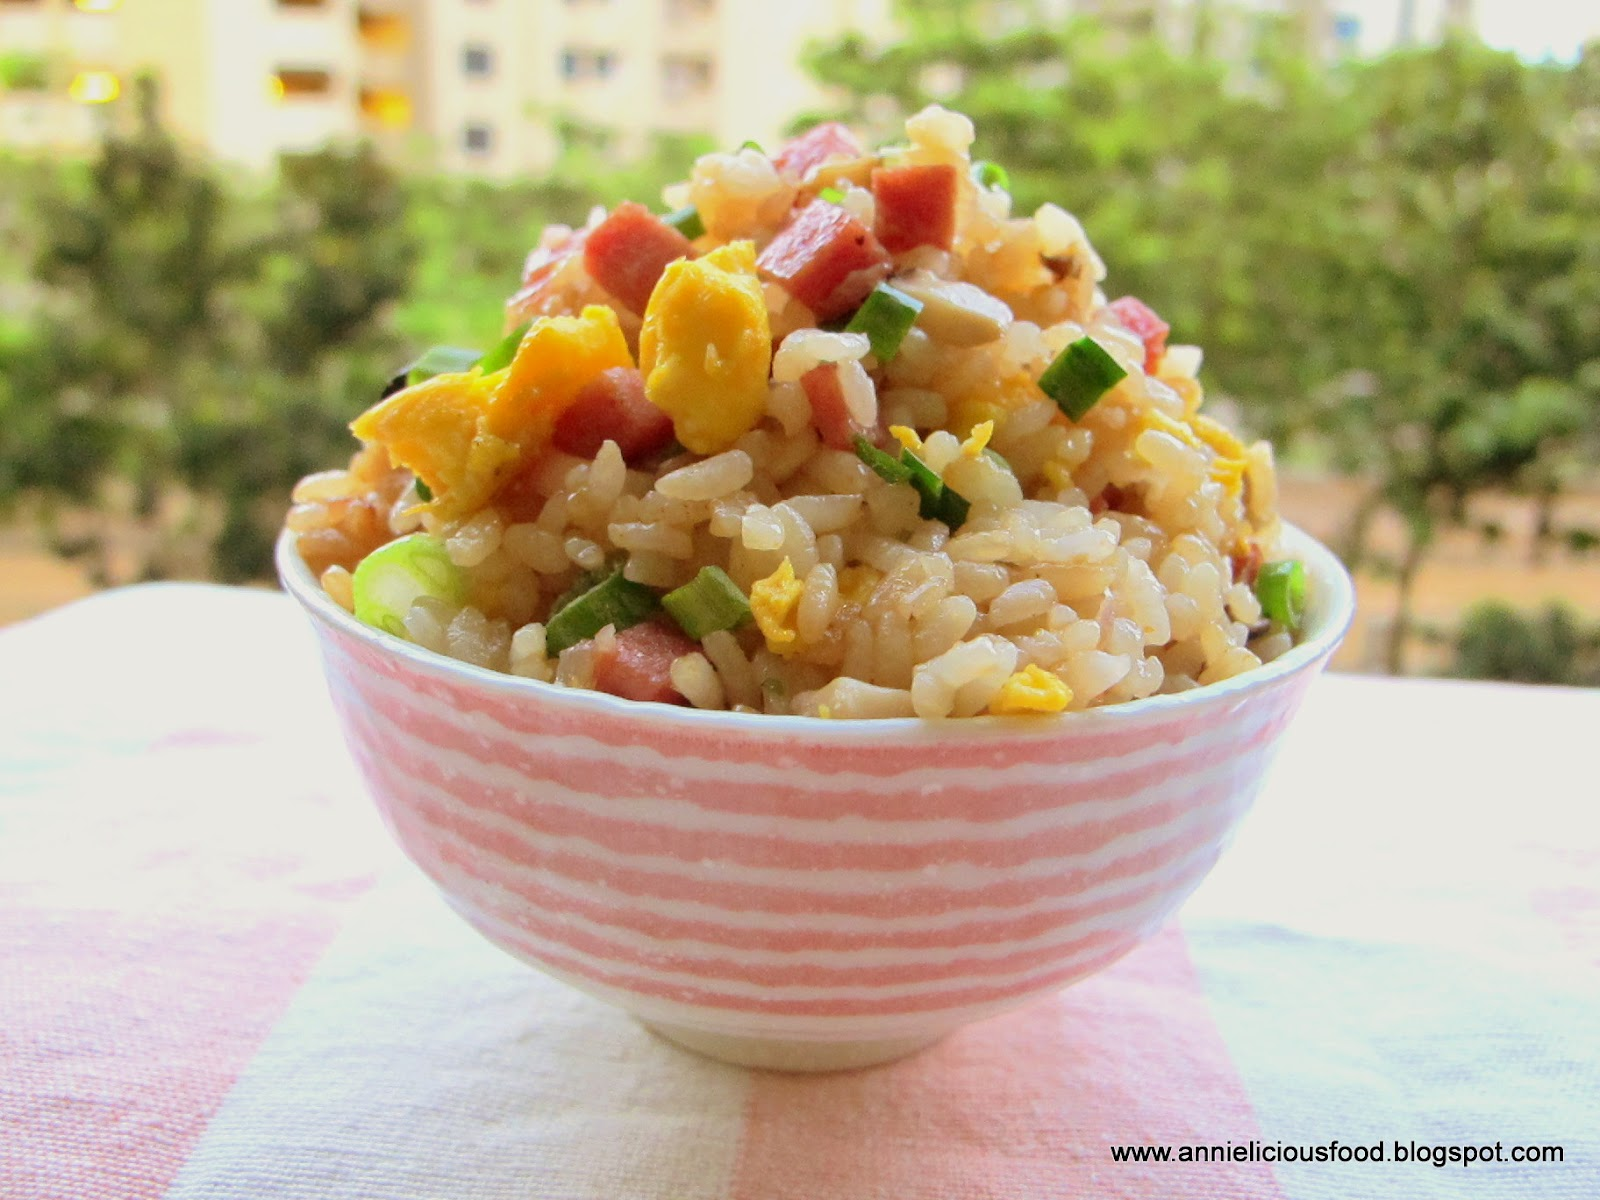 Annielicious Food: SPAM Fried Rice (Using Koshihikari Rice)